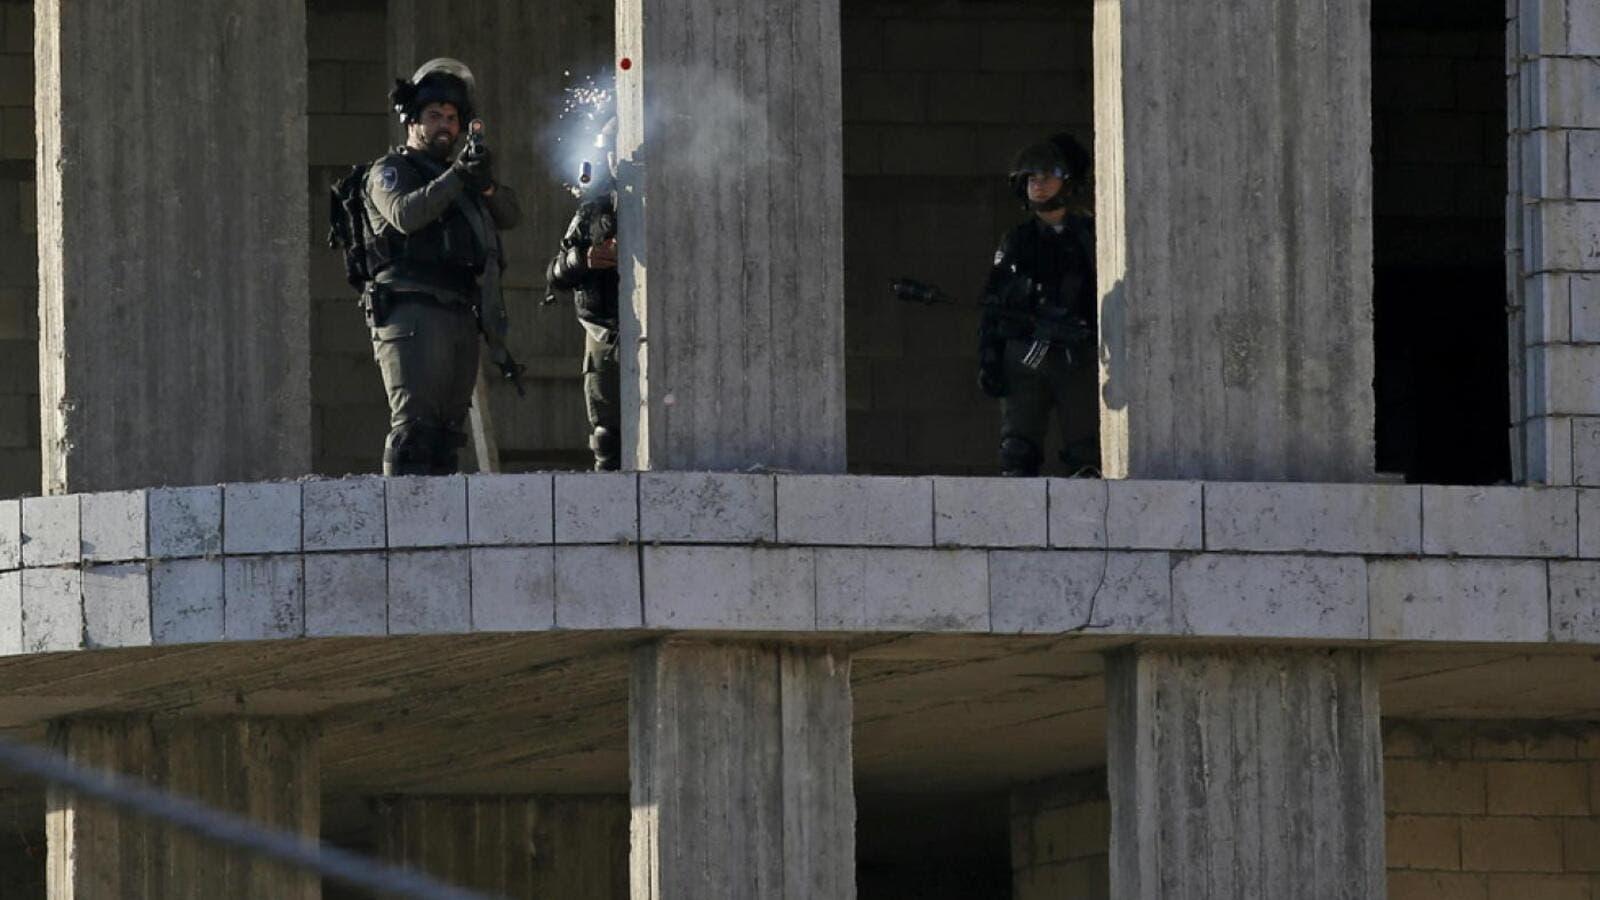 An Israeli soldier fires a tear gas canister at Palestinian stone throwers following a raid in the West Bank city of Ramallah, 10th of December. (AFP)